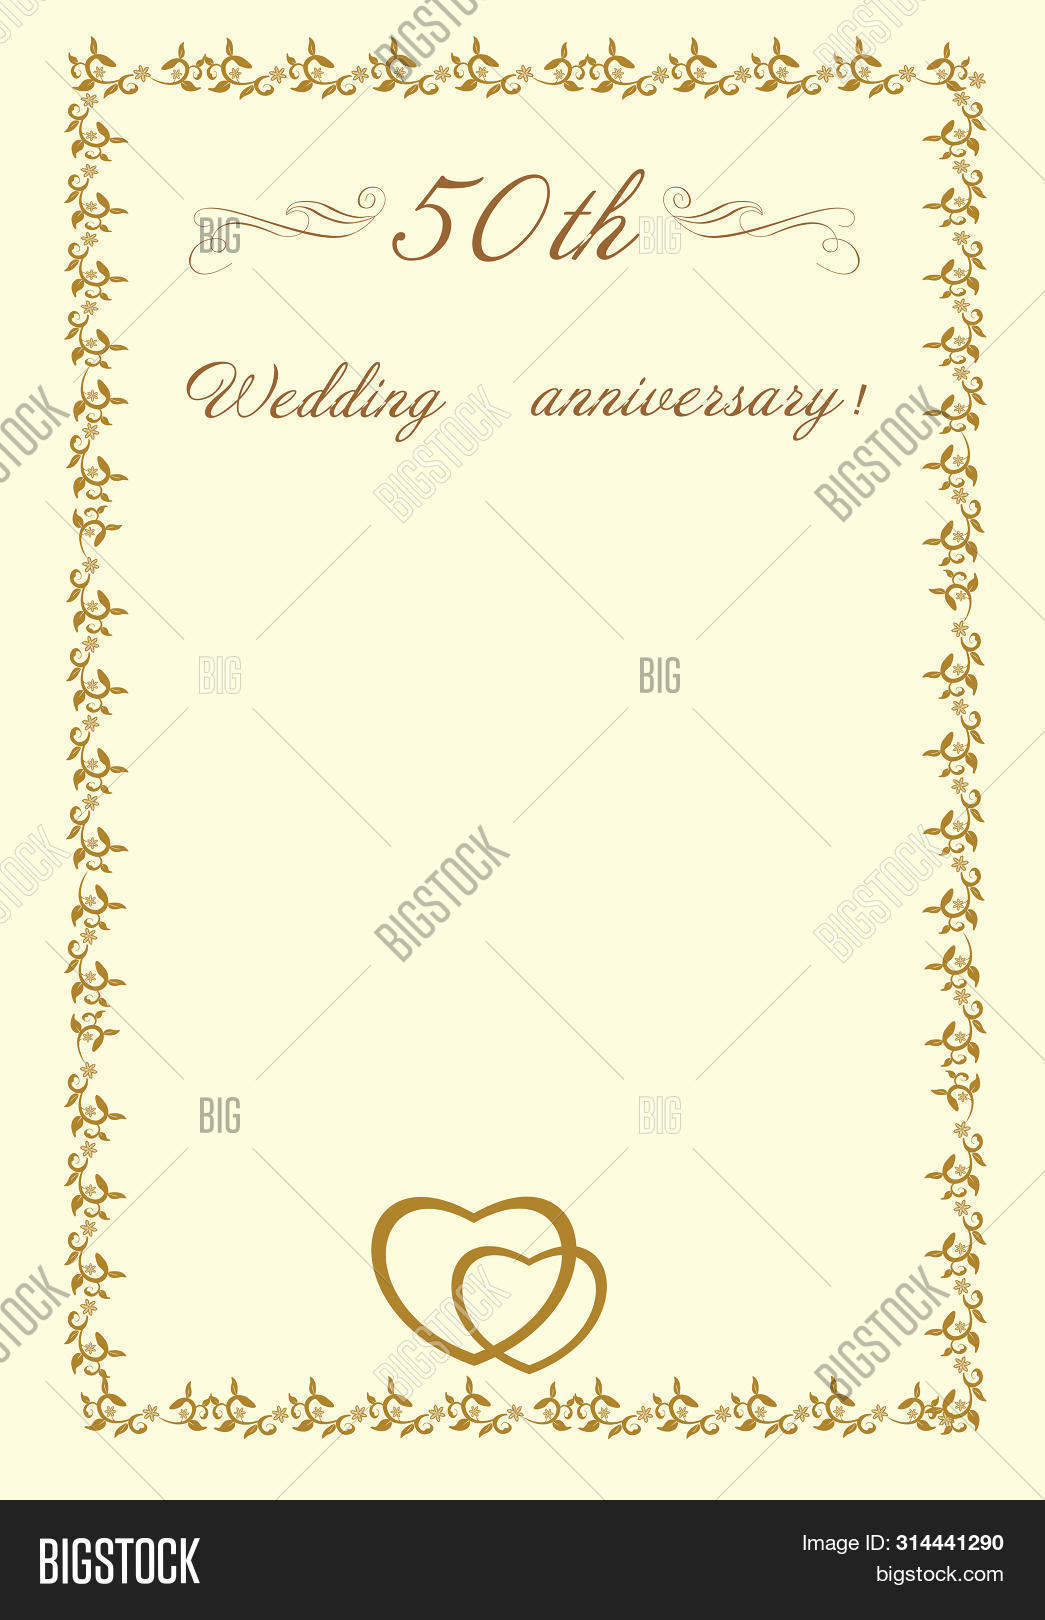 50th Wedding Image Photo Free Trial Bigstock